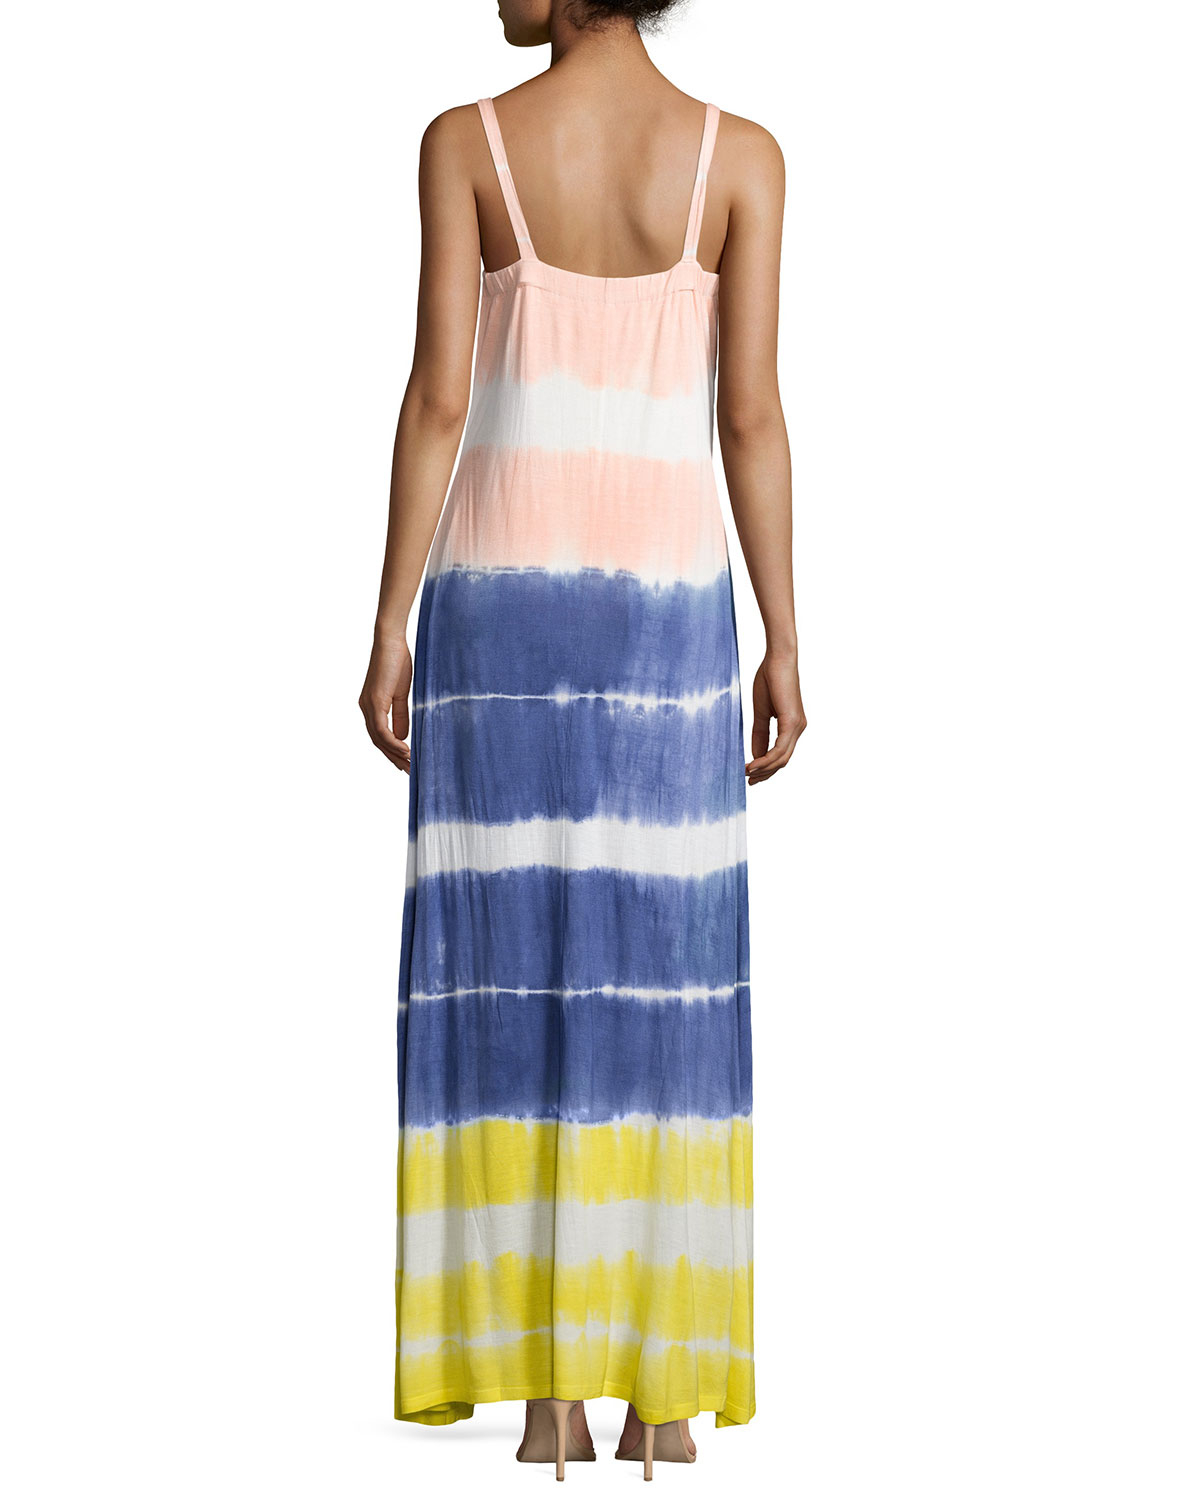 Lyst - Neiman Marcus Tie-dye V-neck Maxi Dress